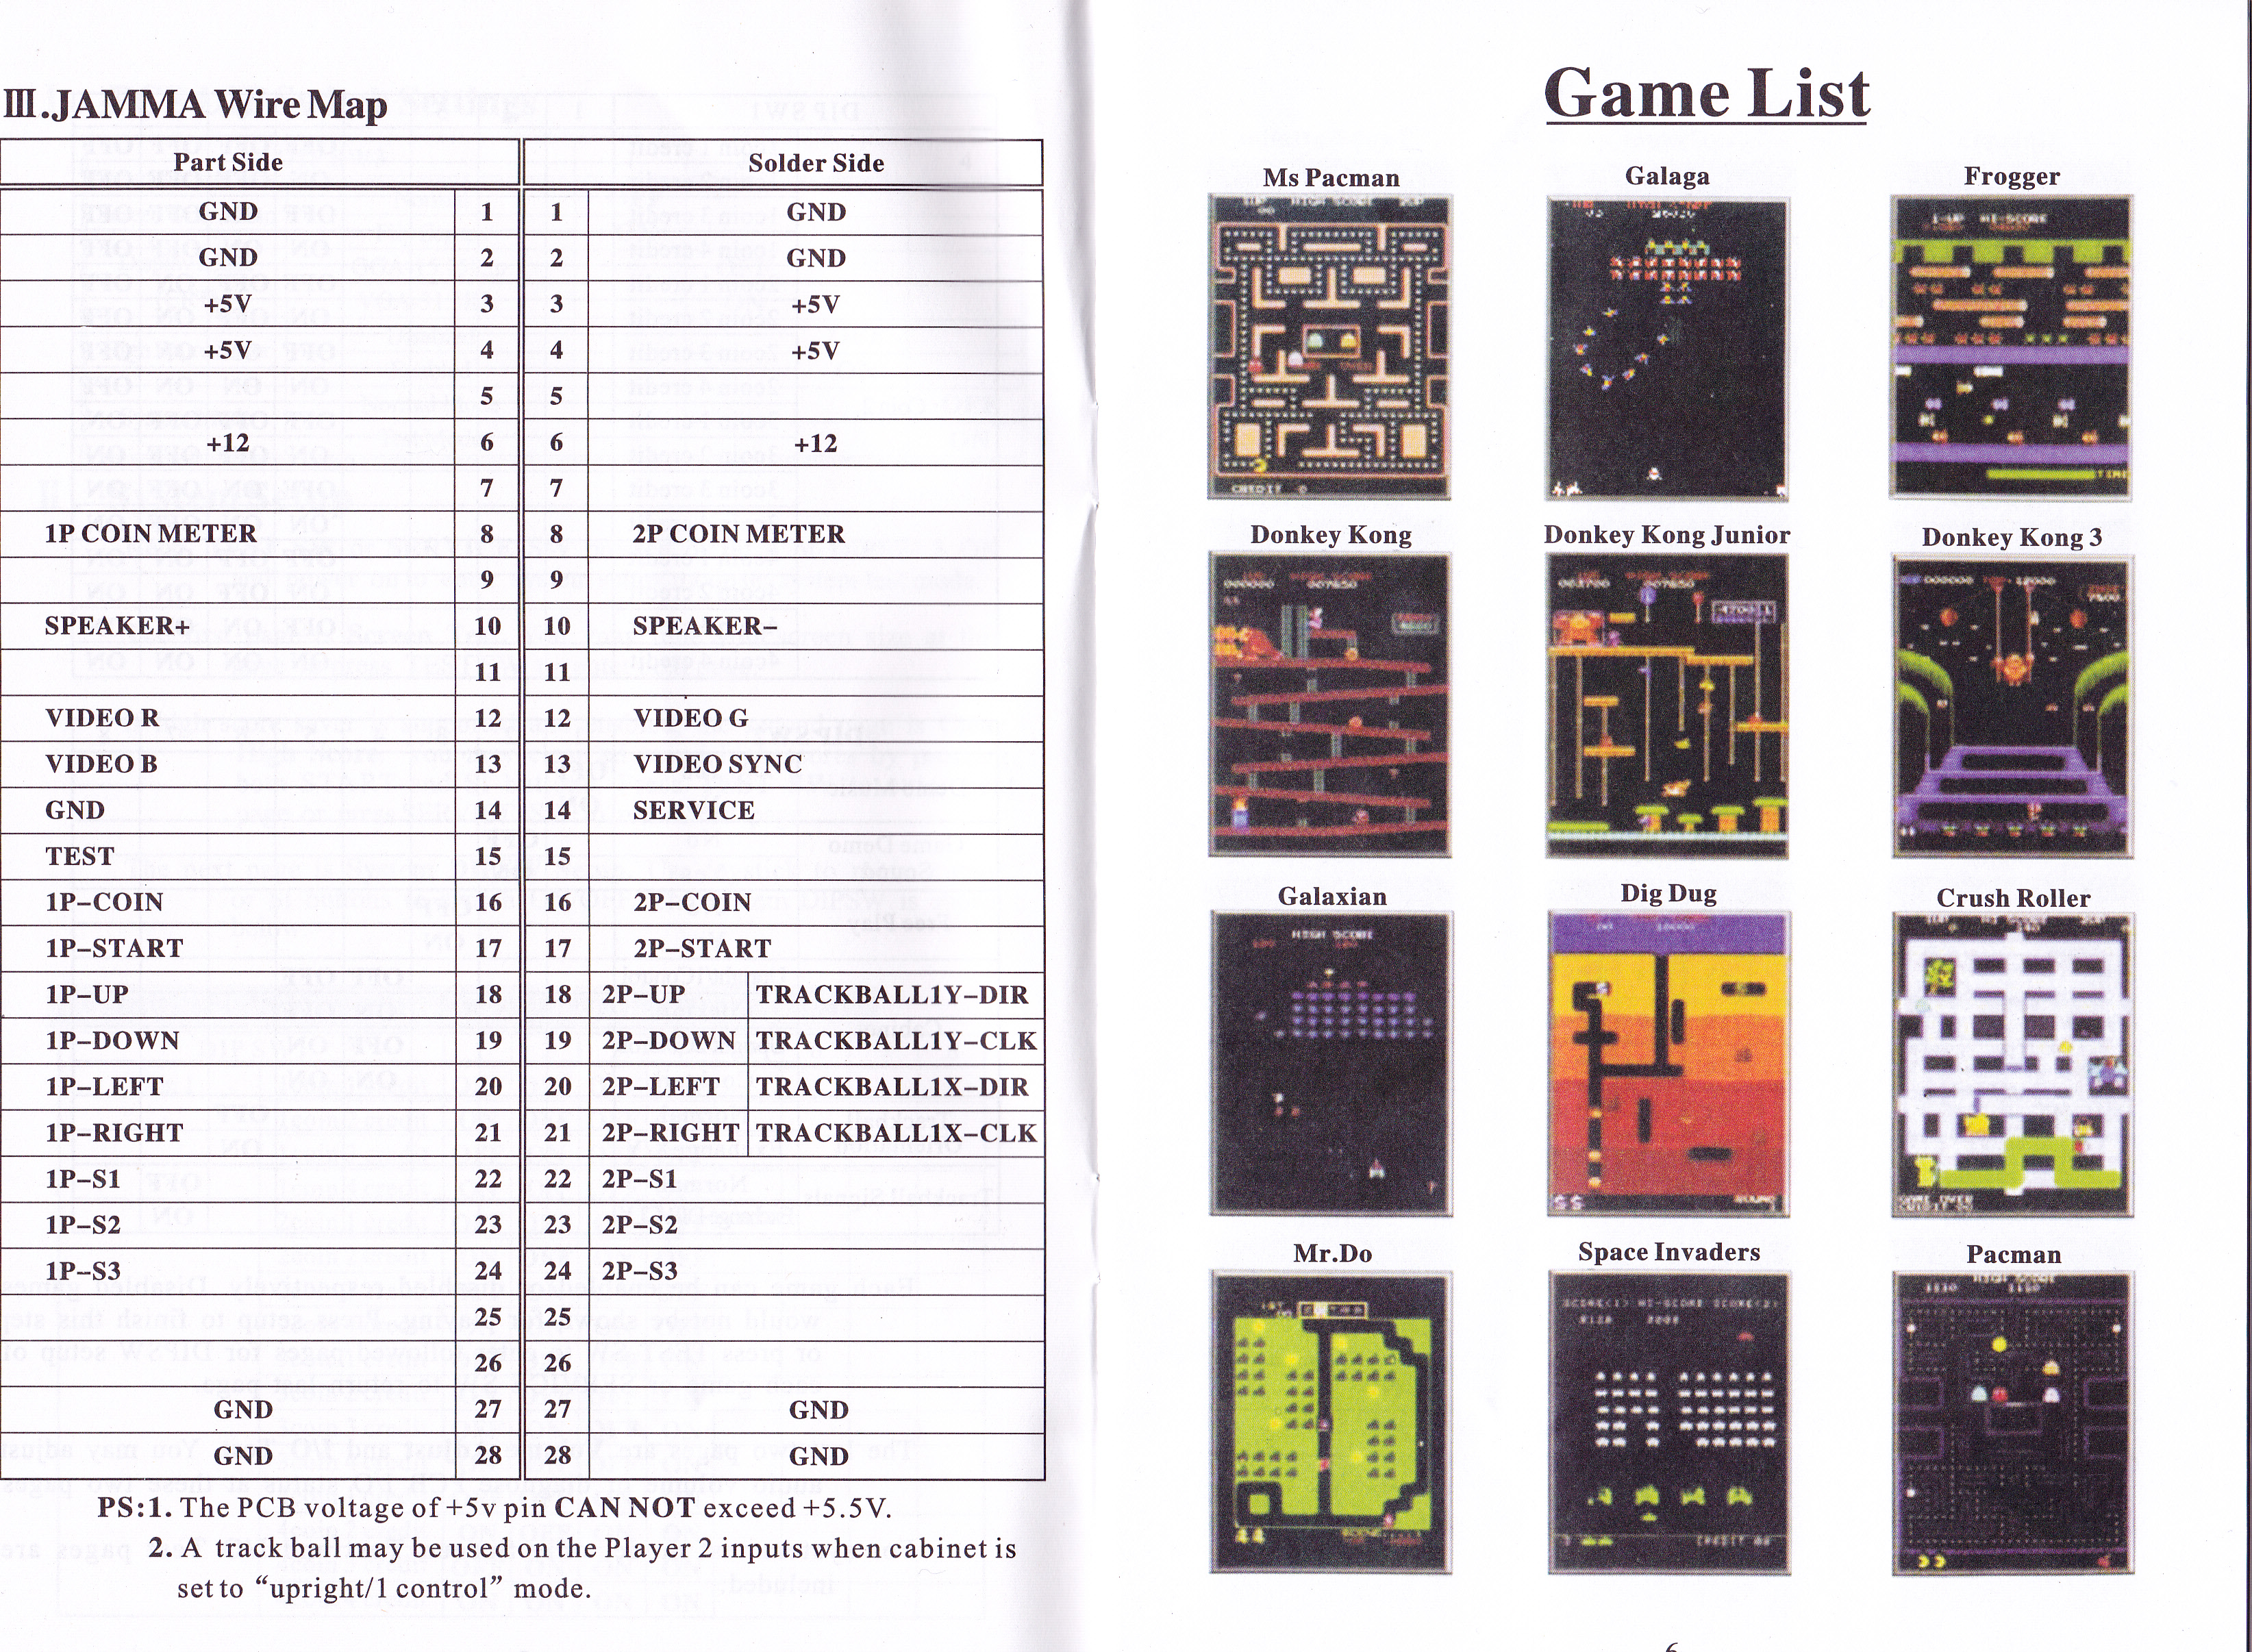 Icade 60 In 1 Game List Bisognieducativispeciali Mame Raspberry Pi To Arcade Controller Interface Arcadomania Shop Manual Pages 5 And 6